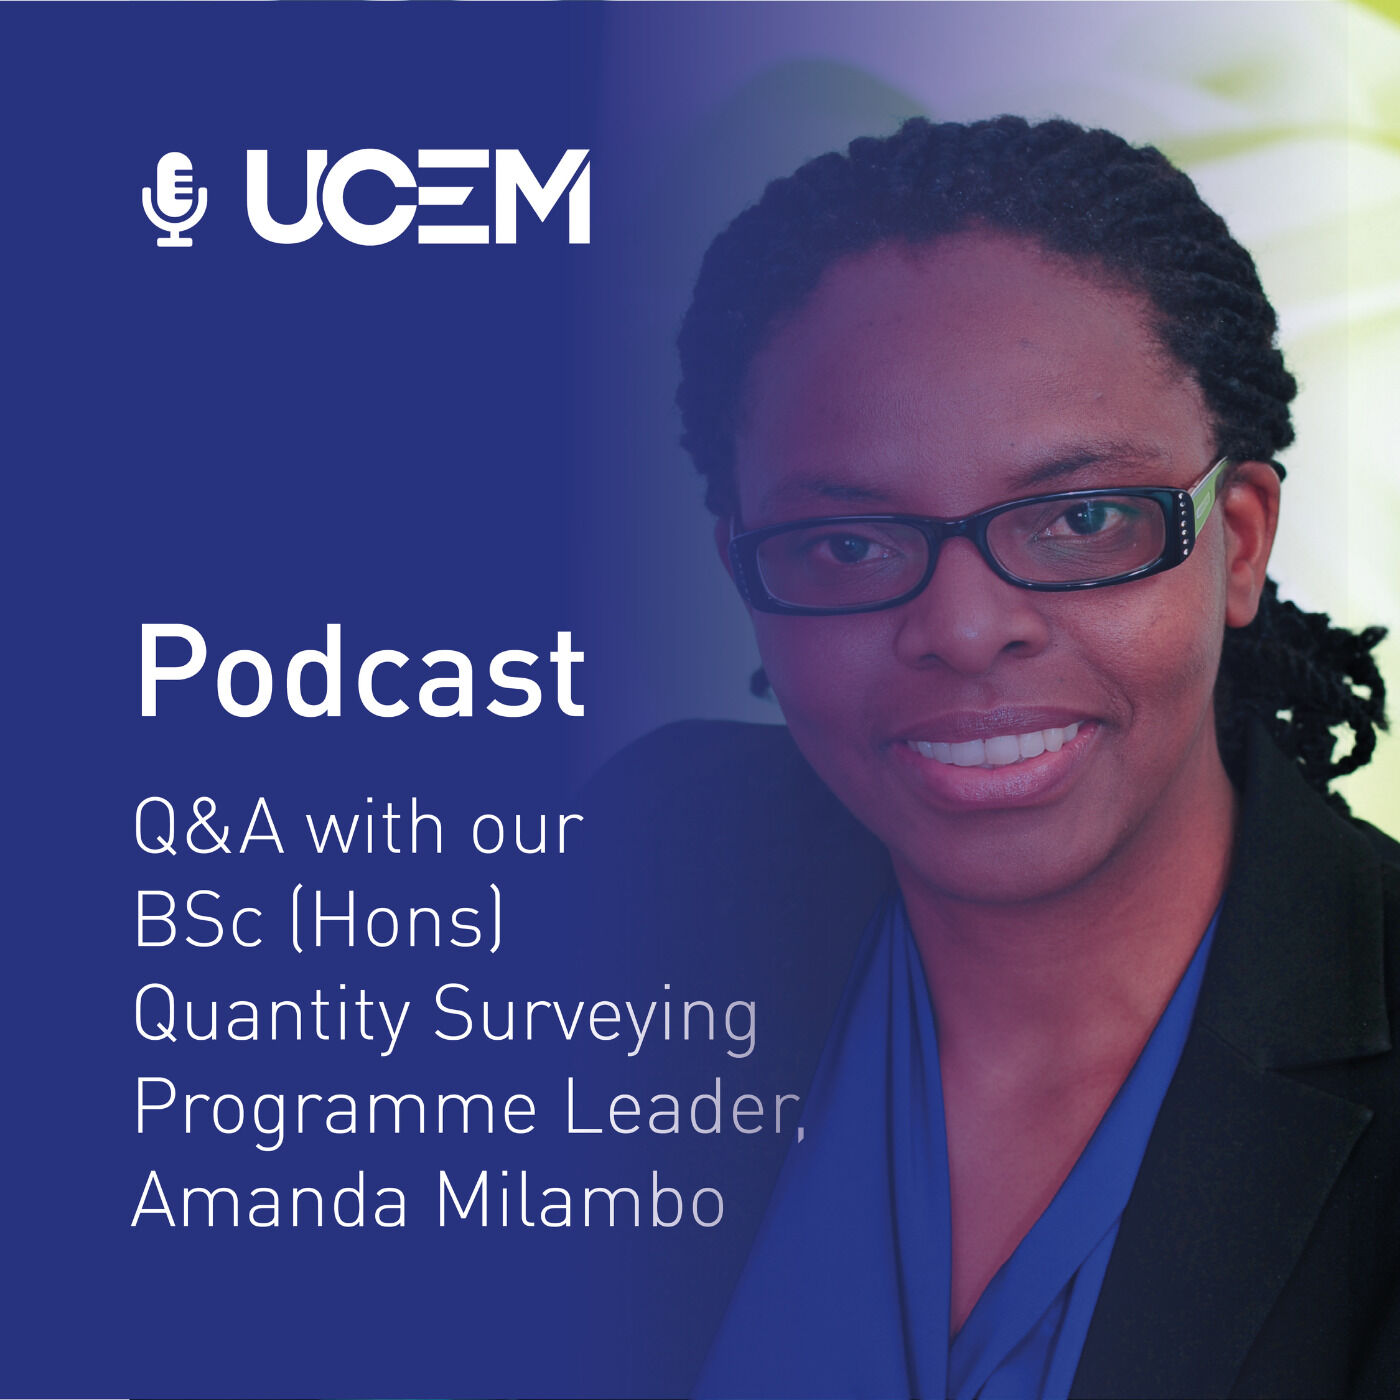 Q&A with our BSc (Hons) Quantity Surveying Programme Leader, Amanda Milambo